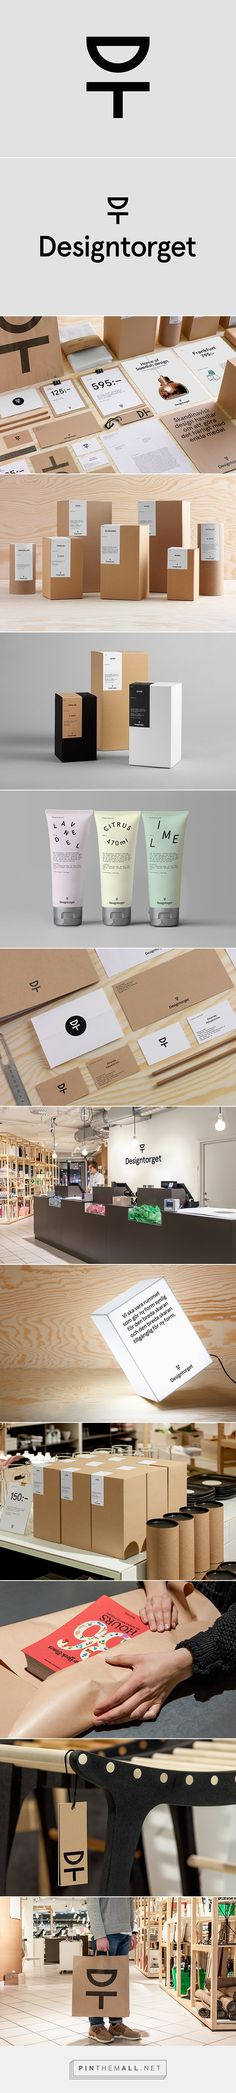 Designtorget on Behance by Kurppa Hosk, Stockholm, Sweden curated by Packaging Diva PD. Coperate Design, Logo Design, Brand Identity Design, Graphic Design Branding, Label Design, Identity Branding, Corporate Identity, Package Design, Visual Identity